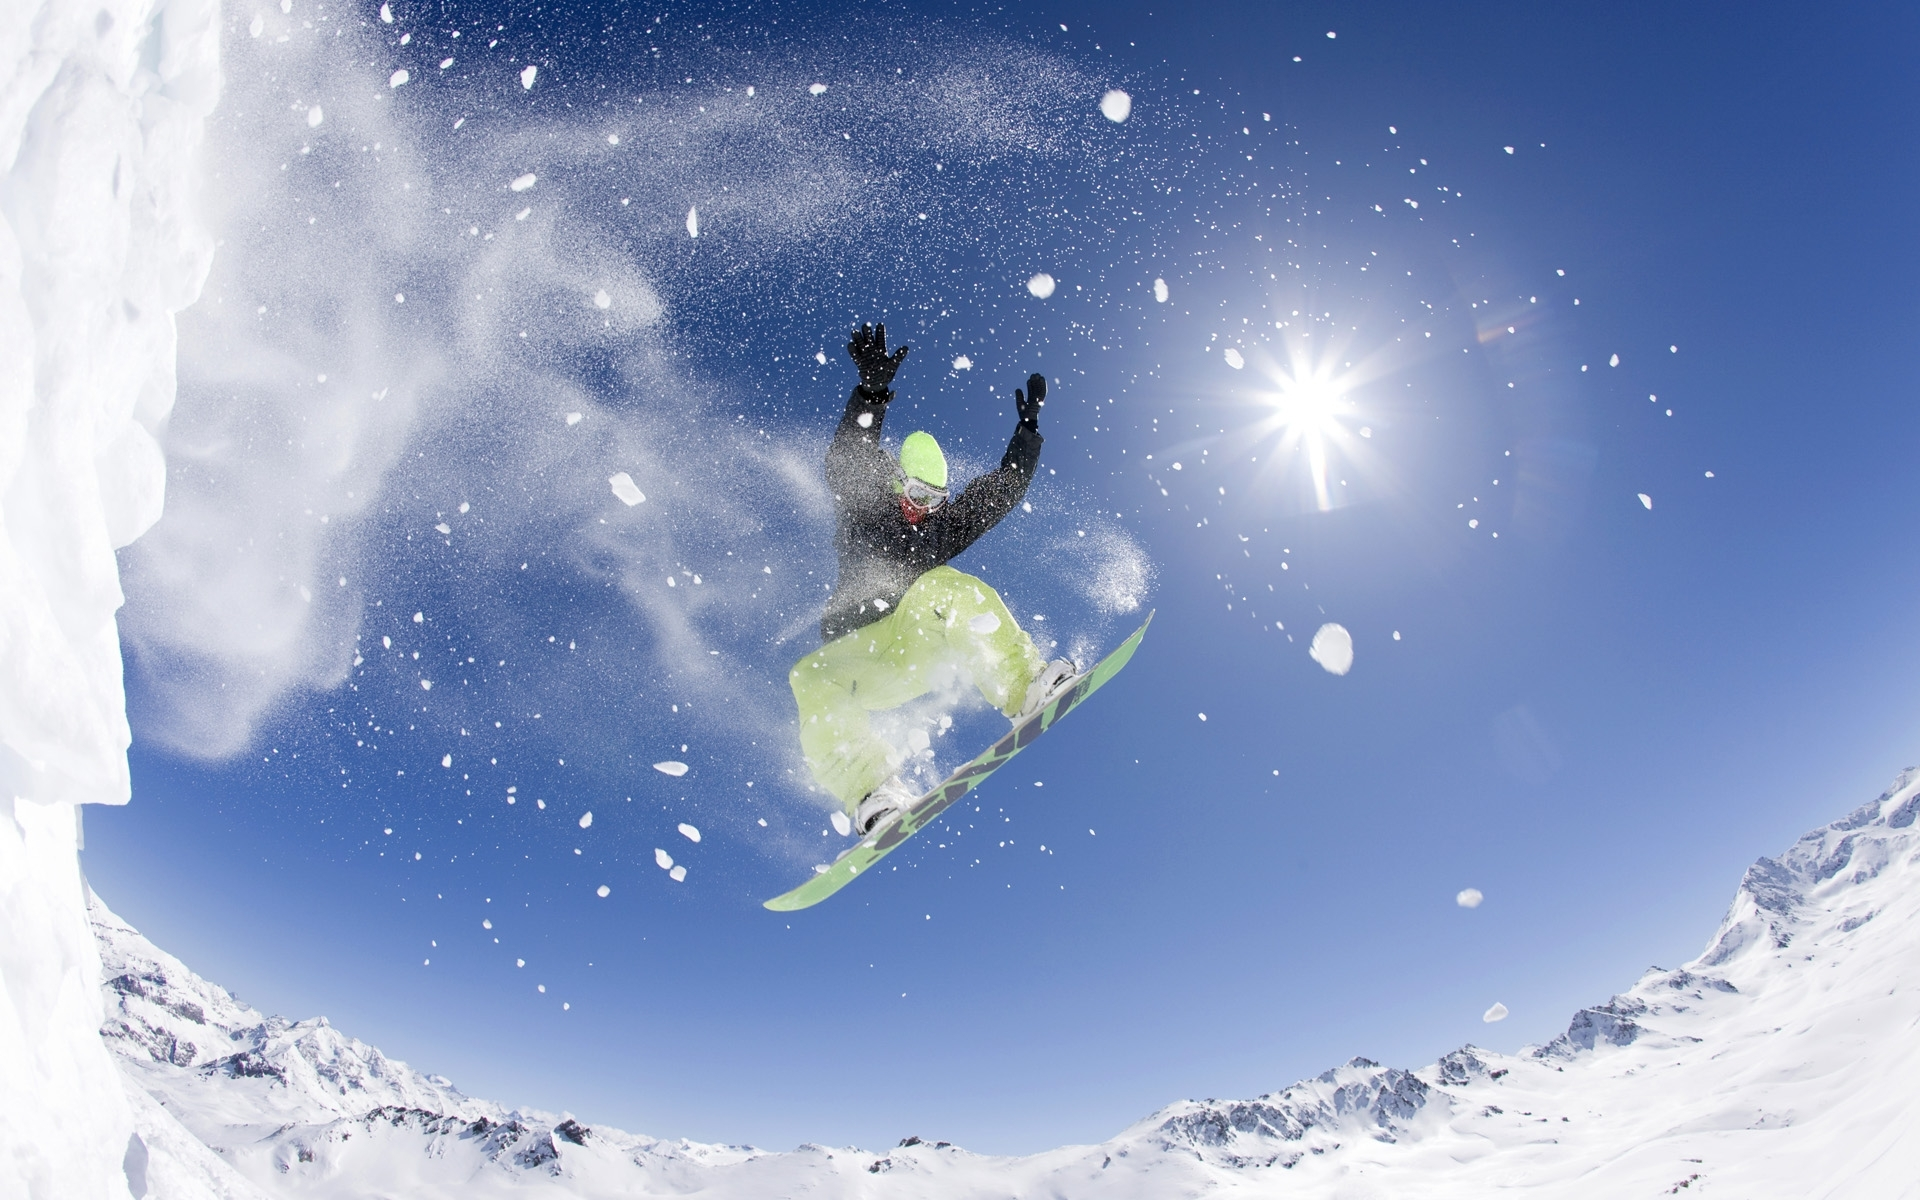 49185 download wallpaper Sports, Landscape, People, Snowboarding screensavers and pictures for free